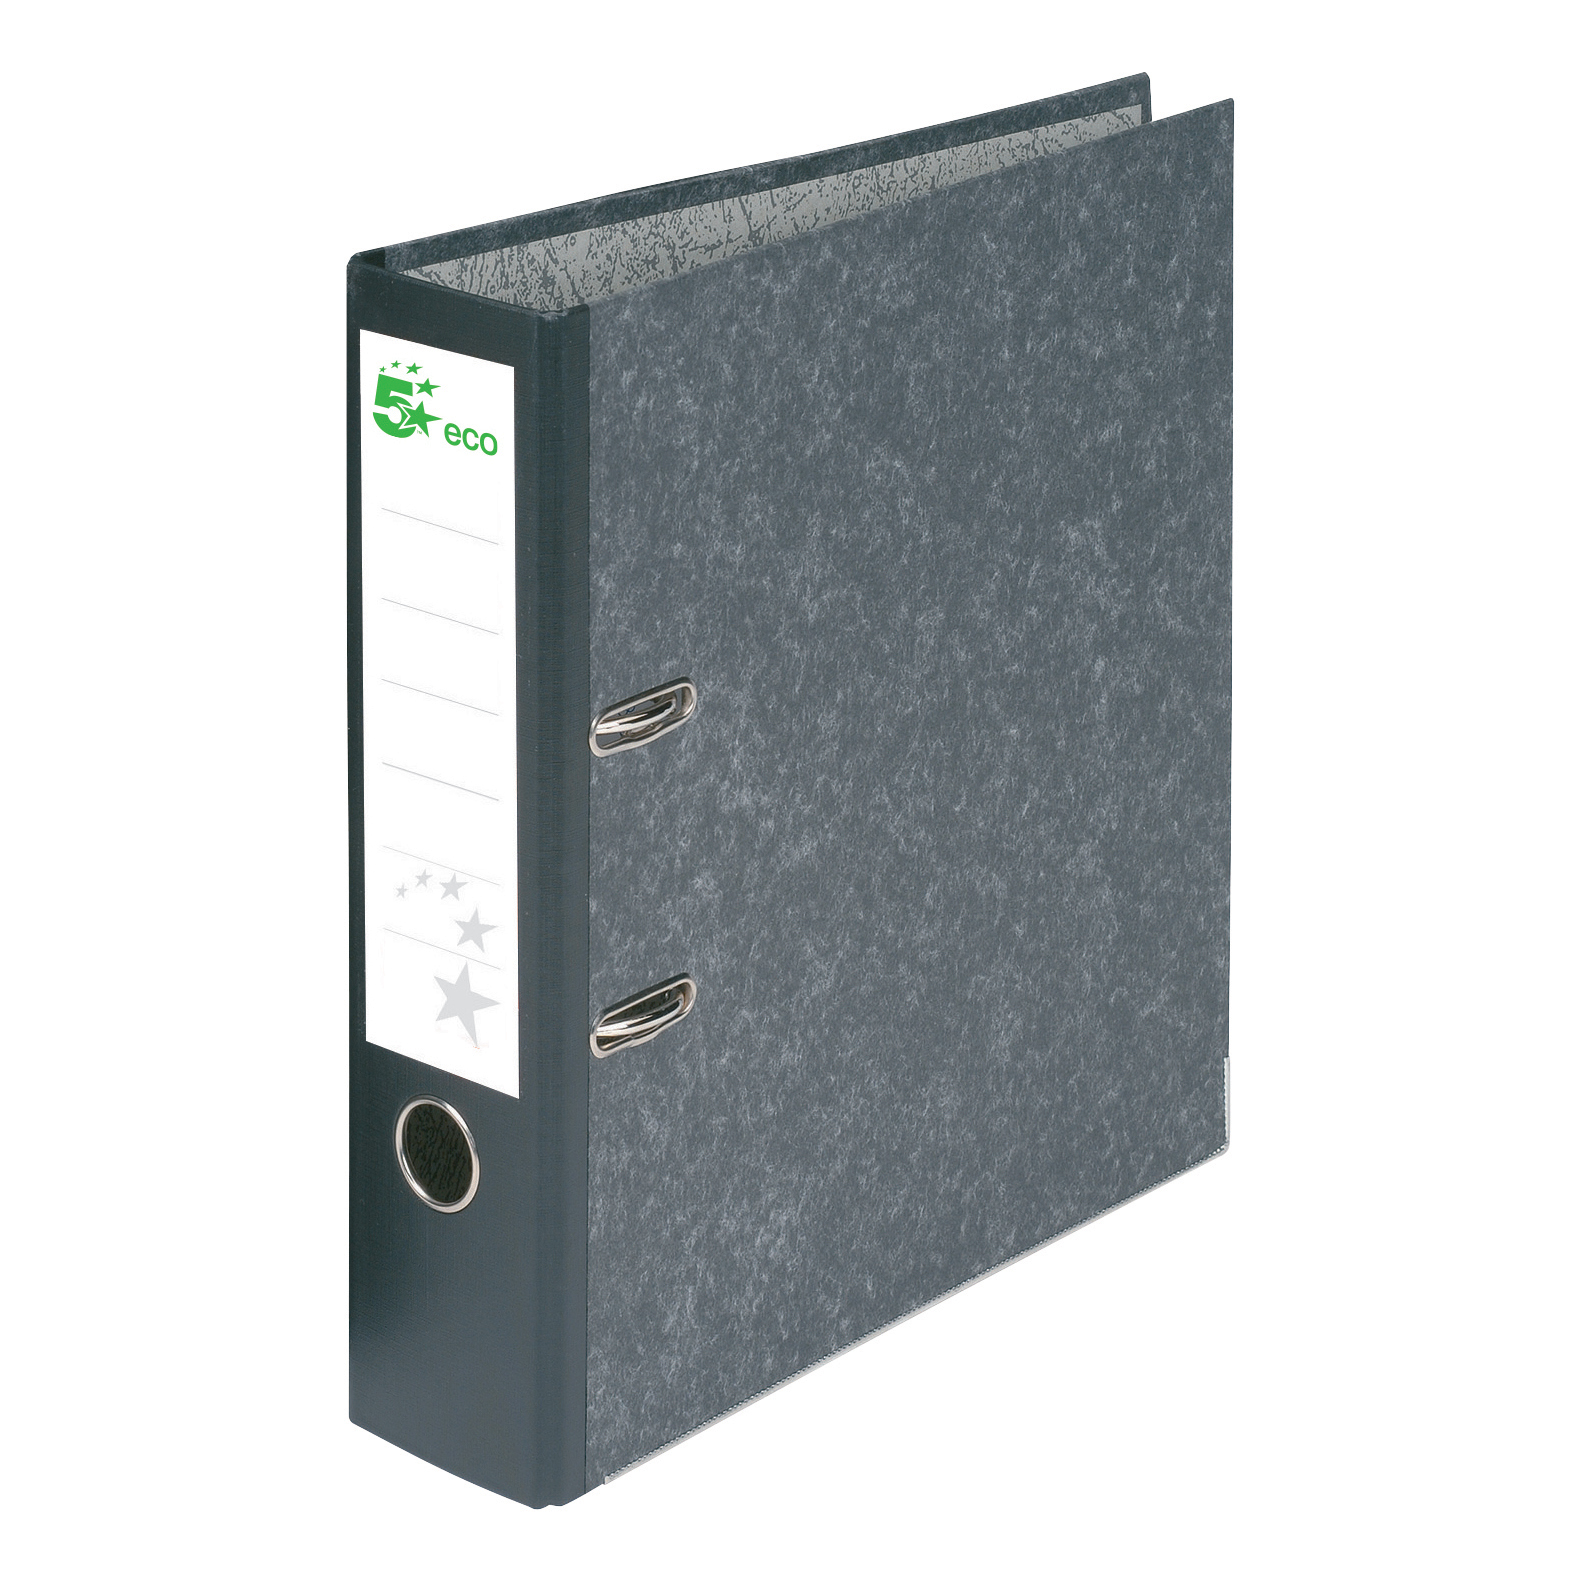 Image for 5 Star Eco Lever Arch File A4 Recycled Cloud